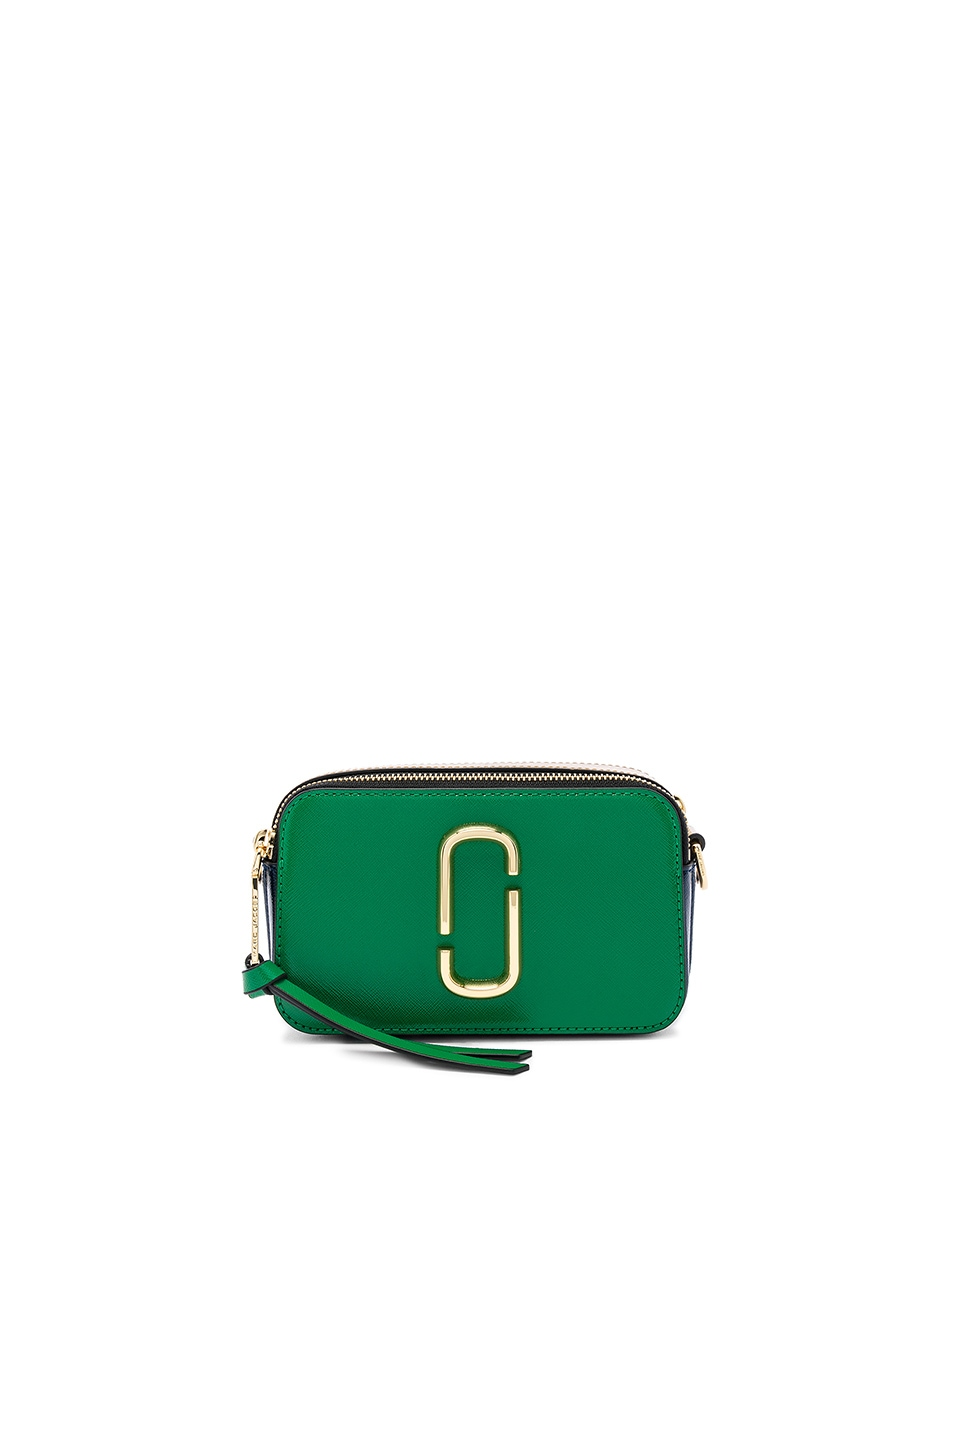 Marc Jacobs Snapshot Crossbody in Green Multi